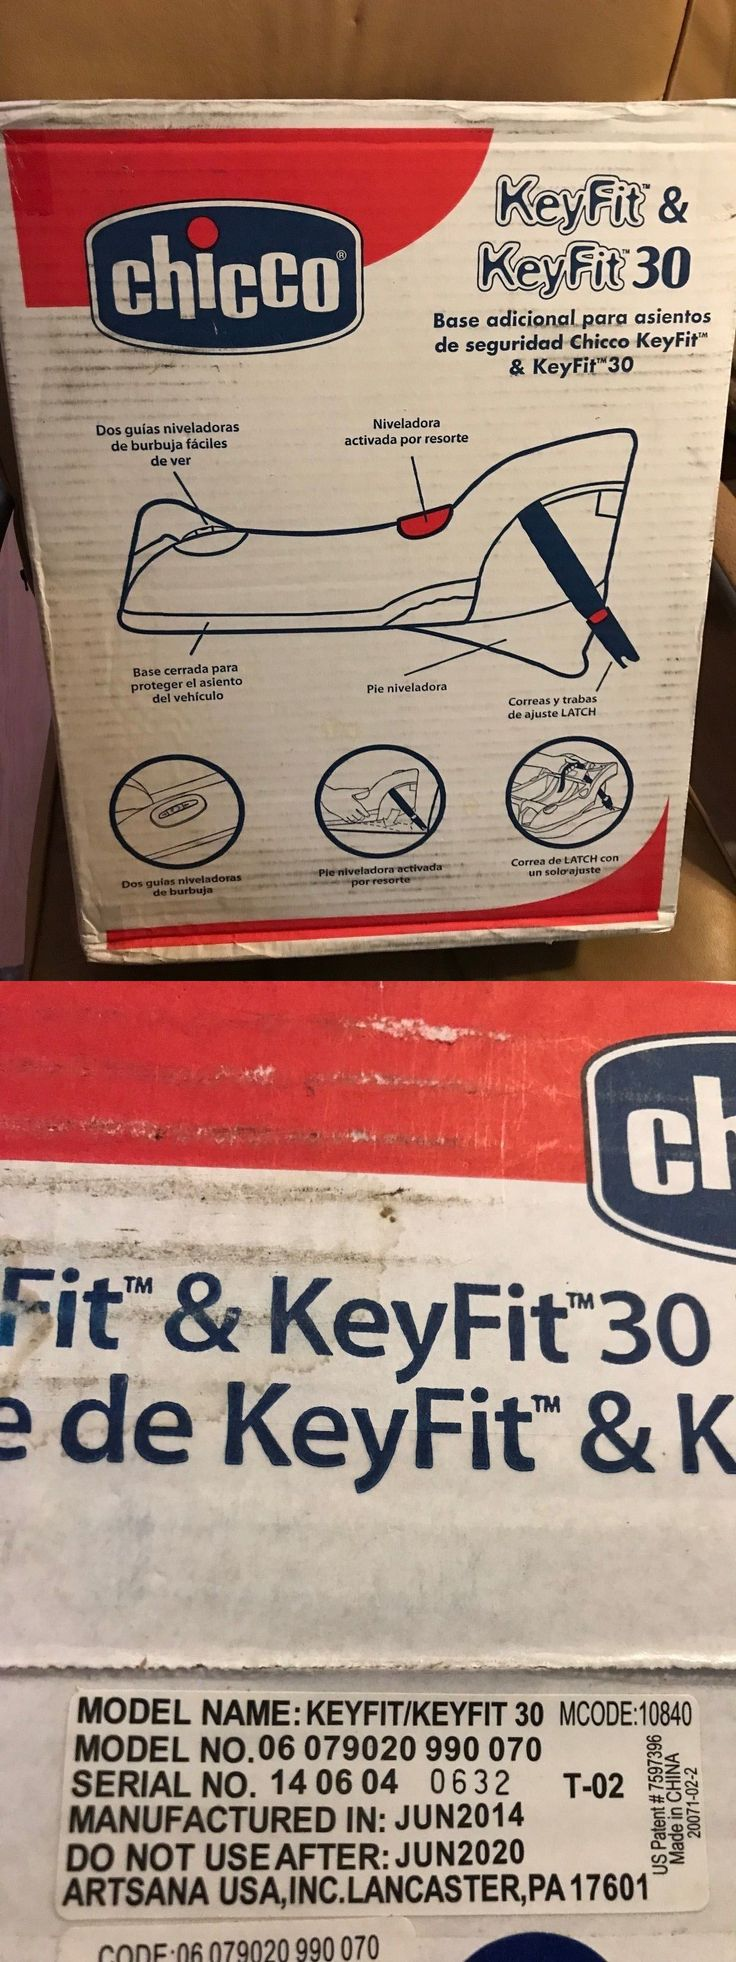 Car Seat Accessories 66693: Chicco Keyfit Car Seat Base New In Box (For Keyfit And Keyfit 30 Infant Car Seat) -> BUY IT NOW ONLY: $69.99 on eBay!